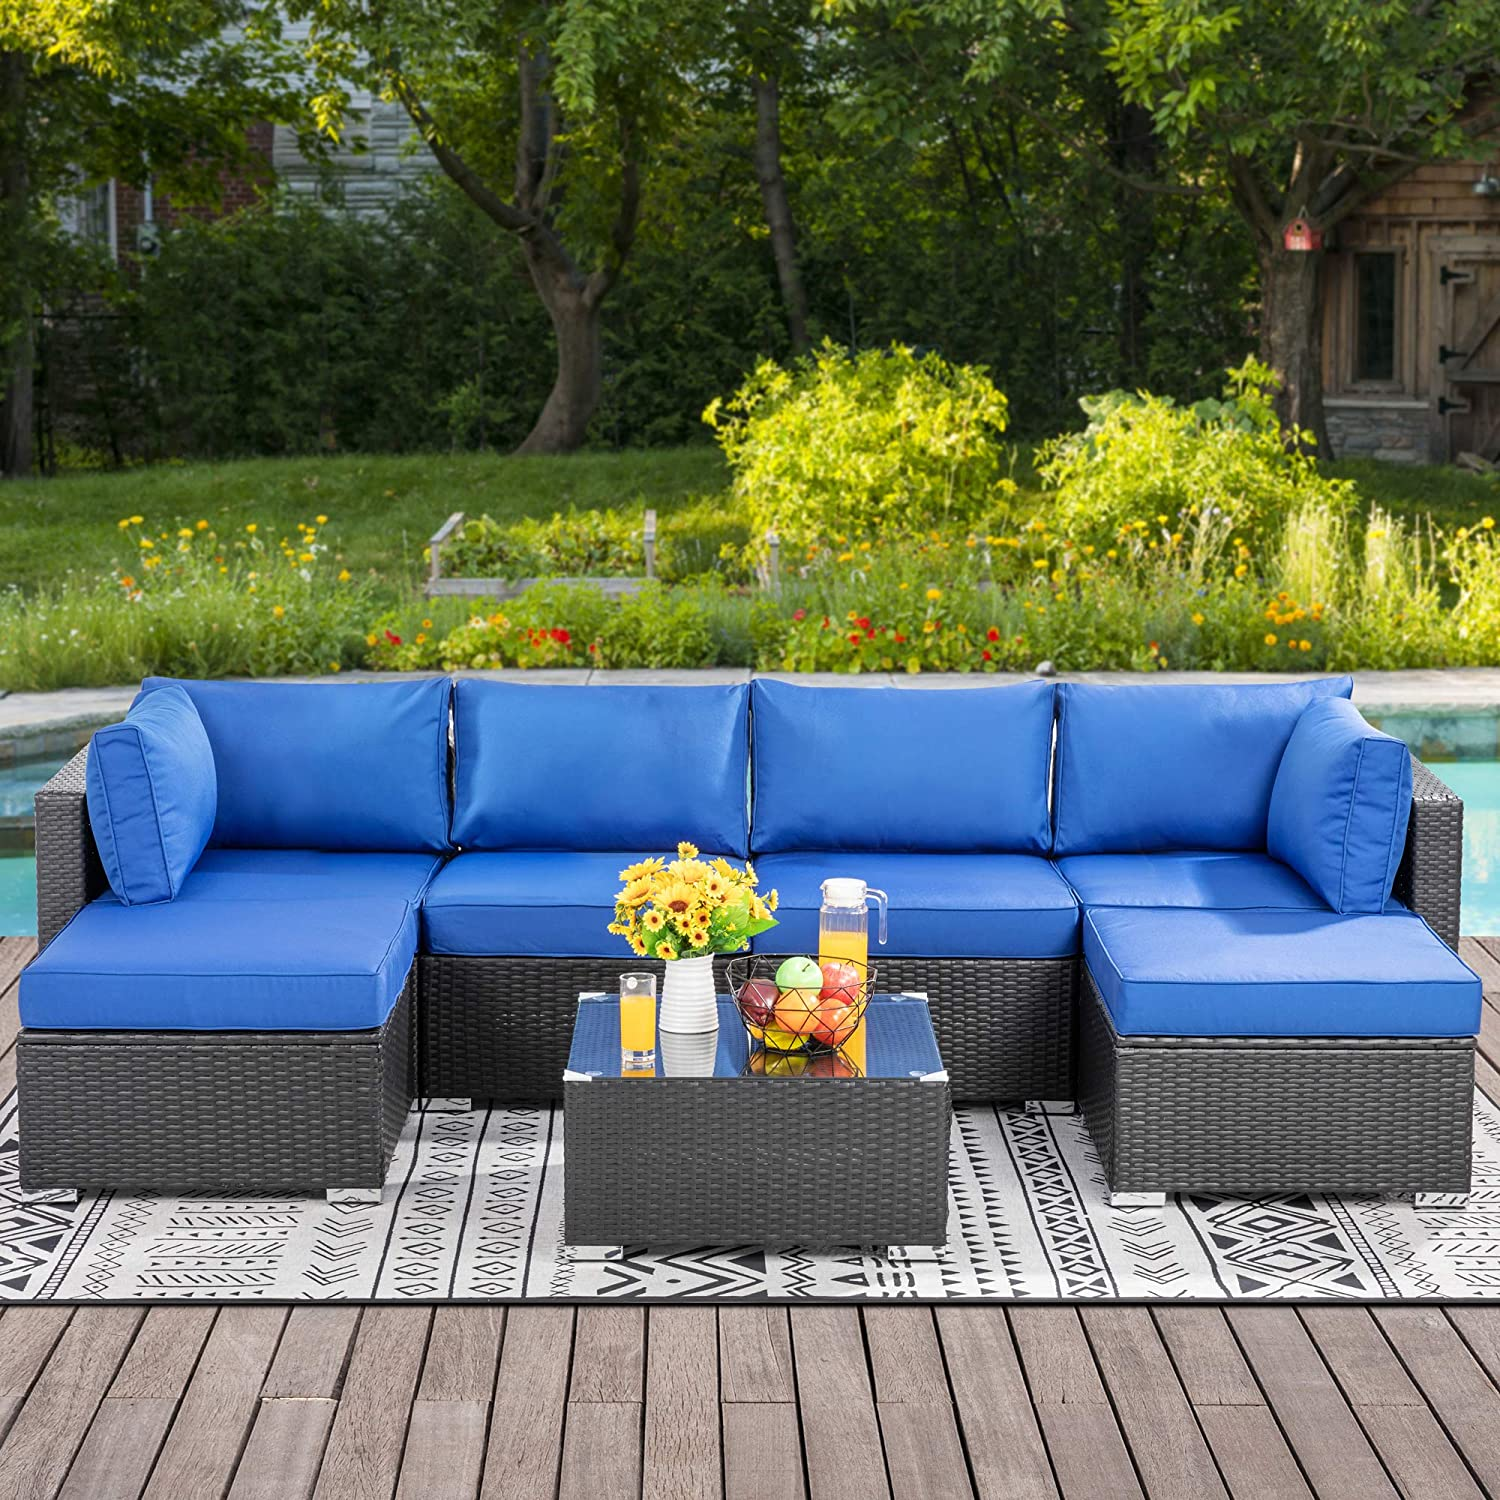 Walsunny 7pcs Patio Outdoor Furniture Sets,Low Back All-Weather Rattan Sectional Sofa with Tea Table&Washable Couch Cushions&Ottoman (Black Rattan (Navy Blue)